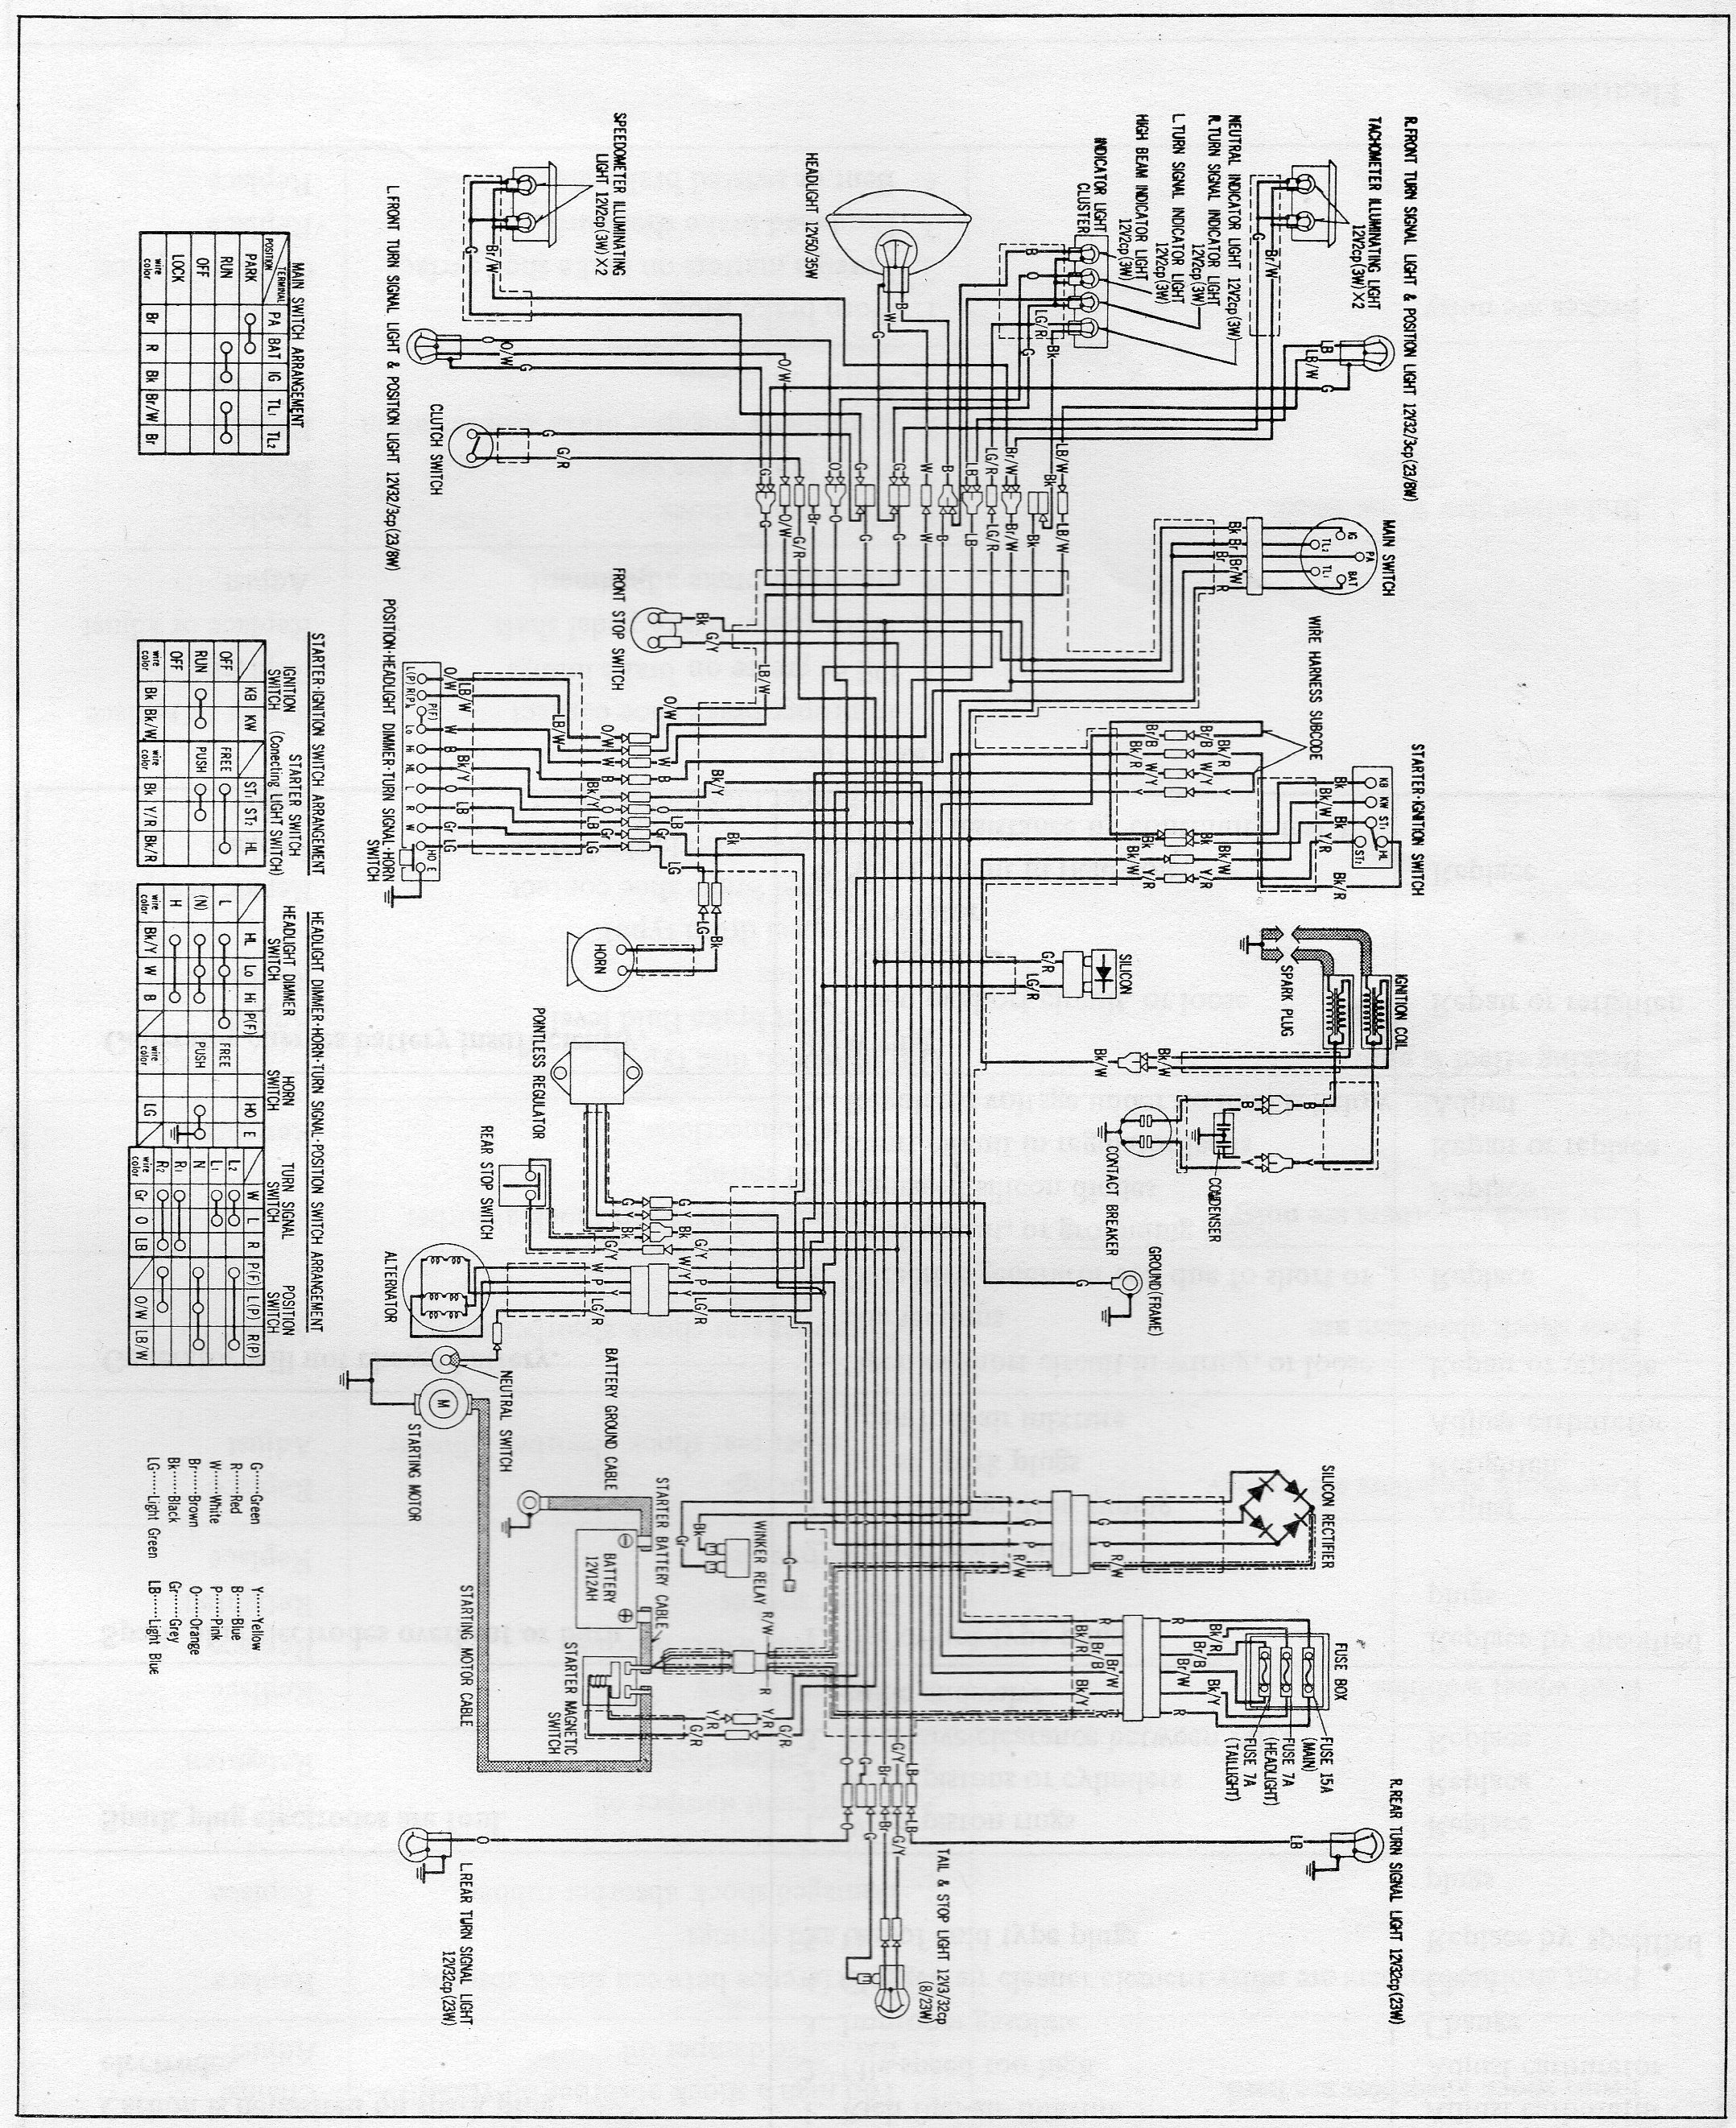 125825d1481670031 wiring diagrams img_6961 hyosung gt250r wiring diagrams wiring diagrams hyosung gt250r brake wiring diagram at webbmarketing.co